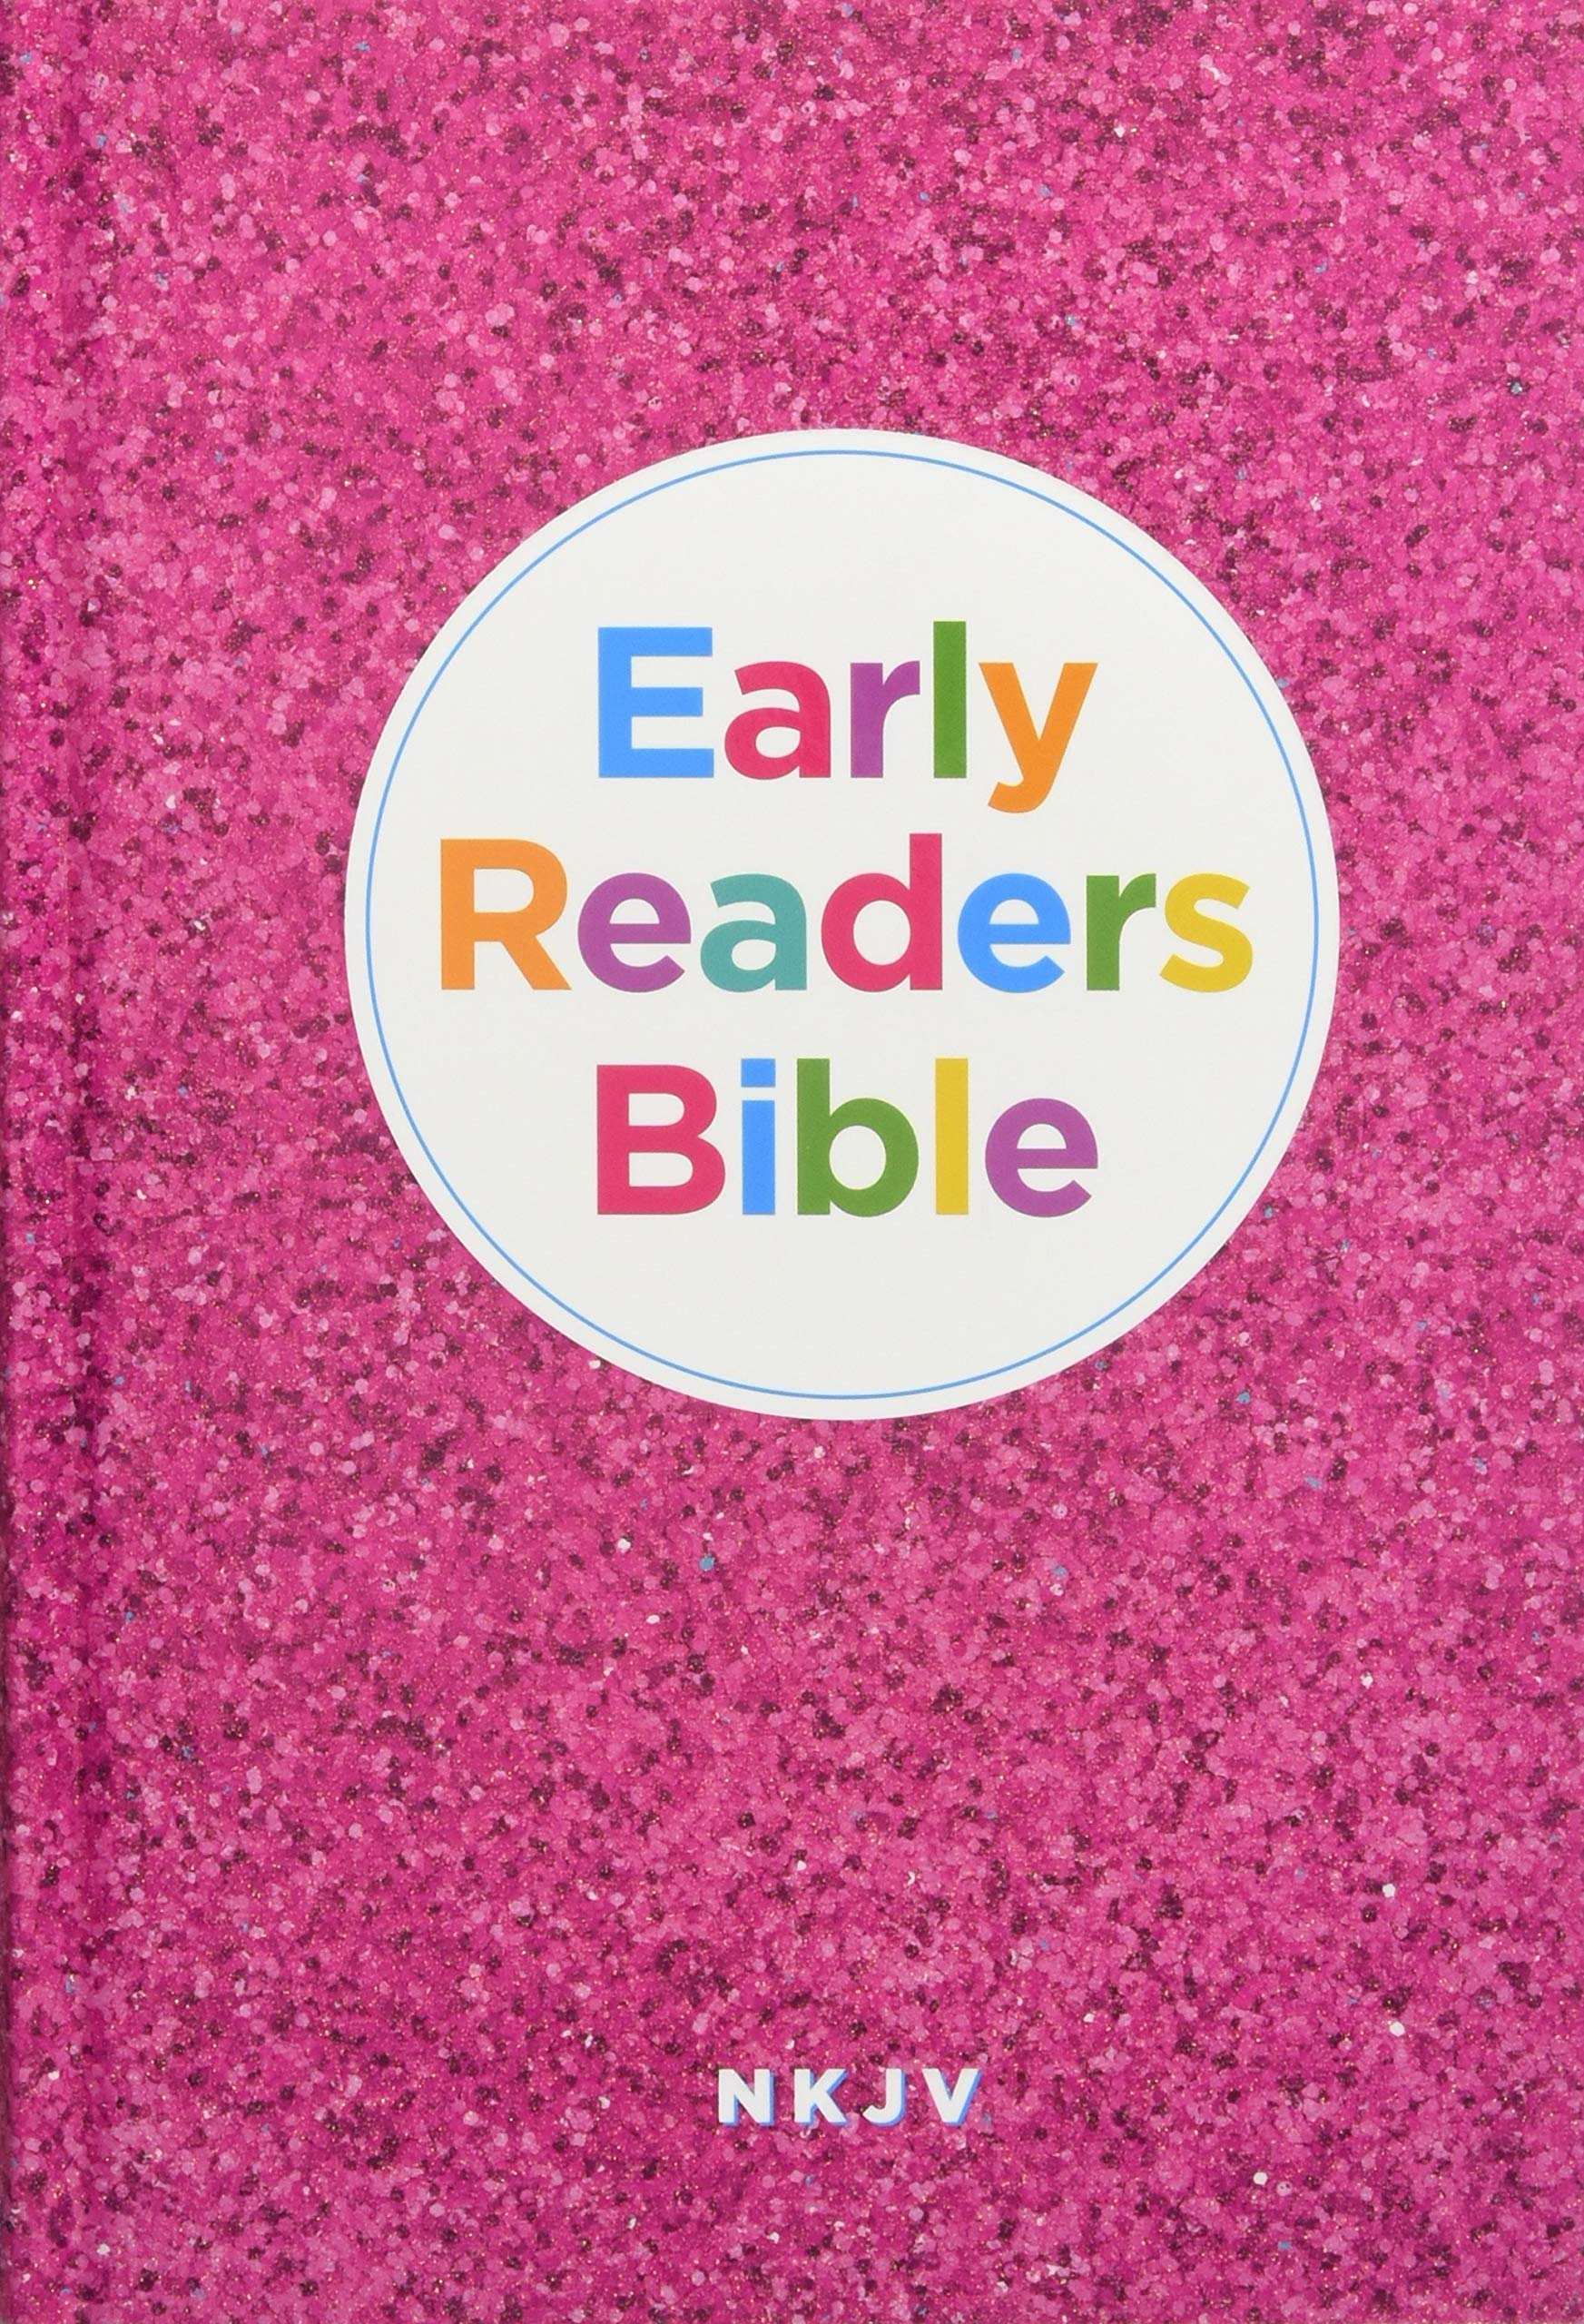 NKJV Early Readers Bible: Thomas Nelson: 9781400309115: Amazon.com ...